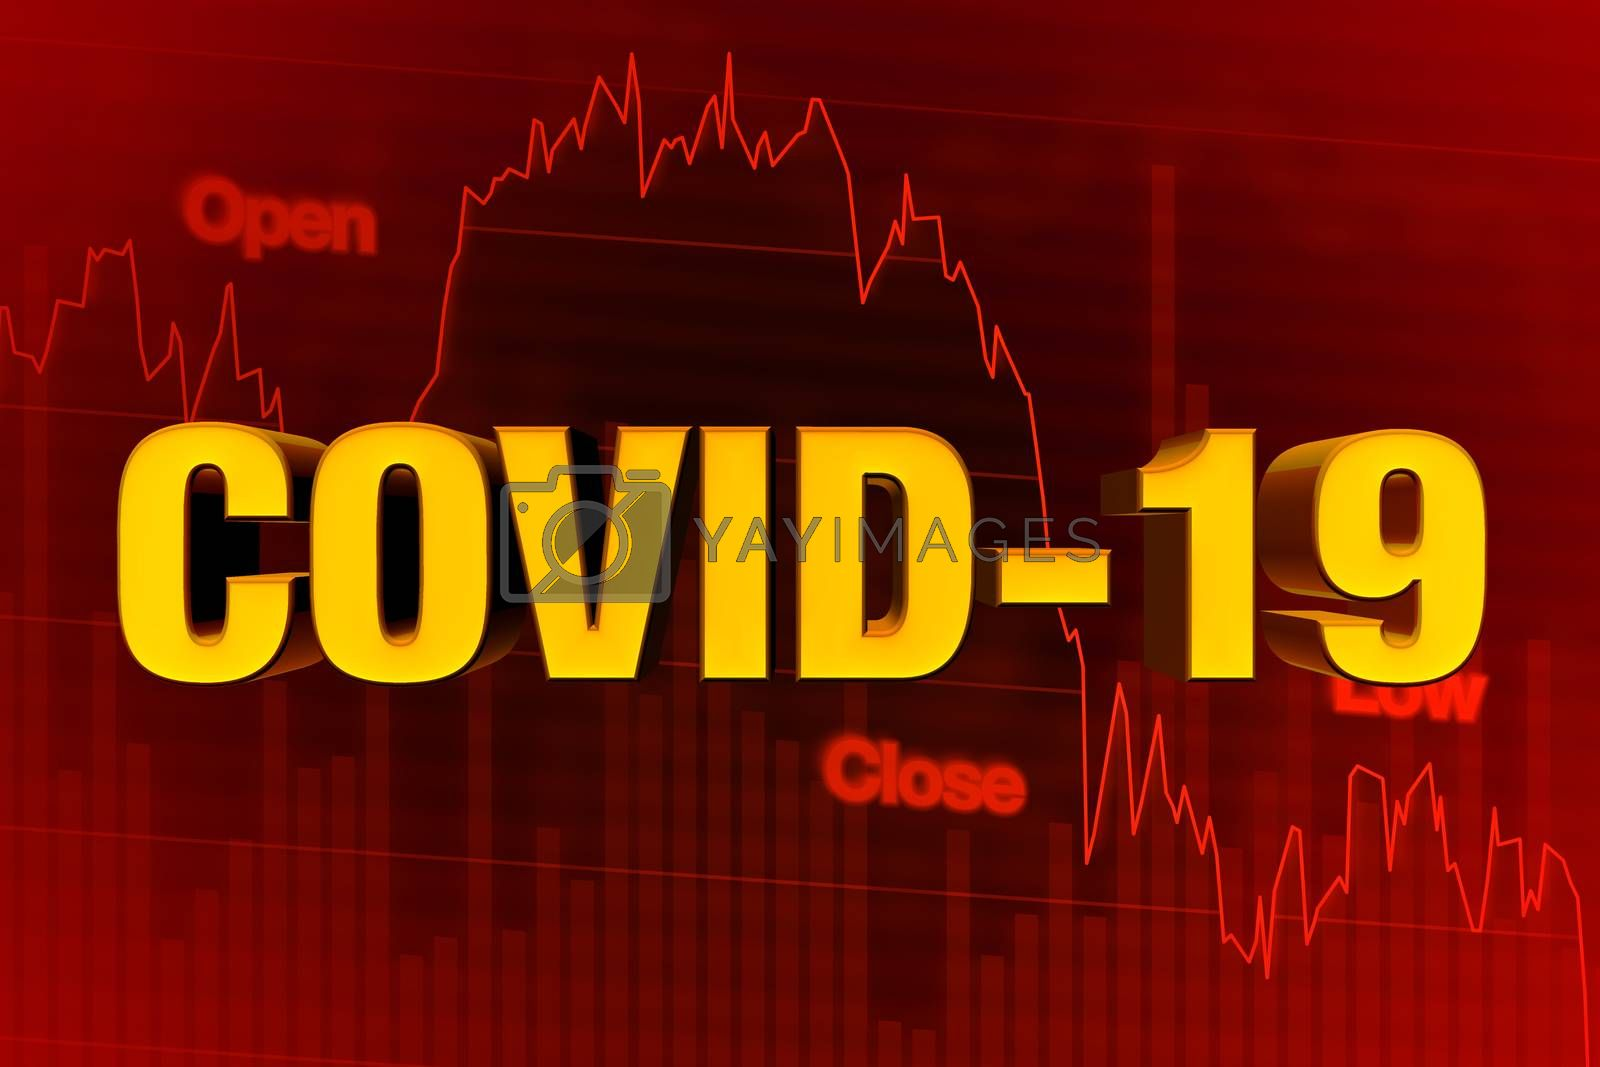 COVID-19 or COVID 19 Corona Virus Word on Chart of Falling Stock Market in Red